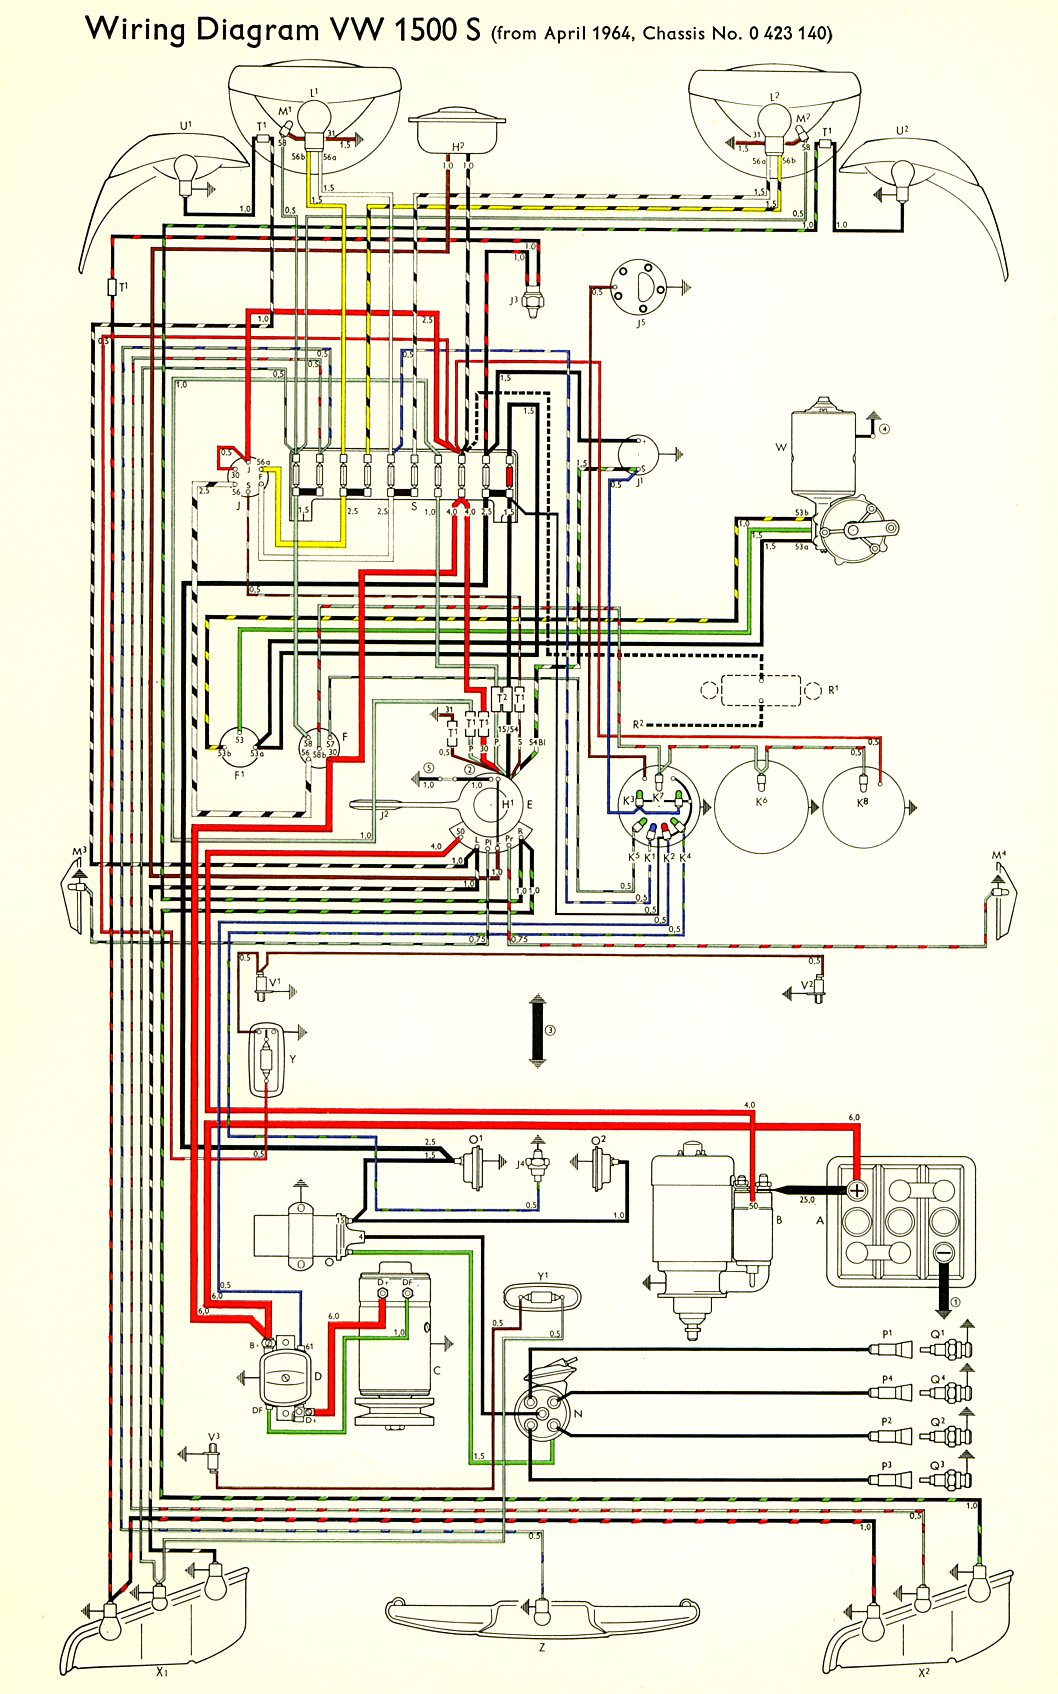 type3_1500S_6465 1965 type 2 wiring diagram 1965 wiring diagrams collection  at edmiracle.co